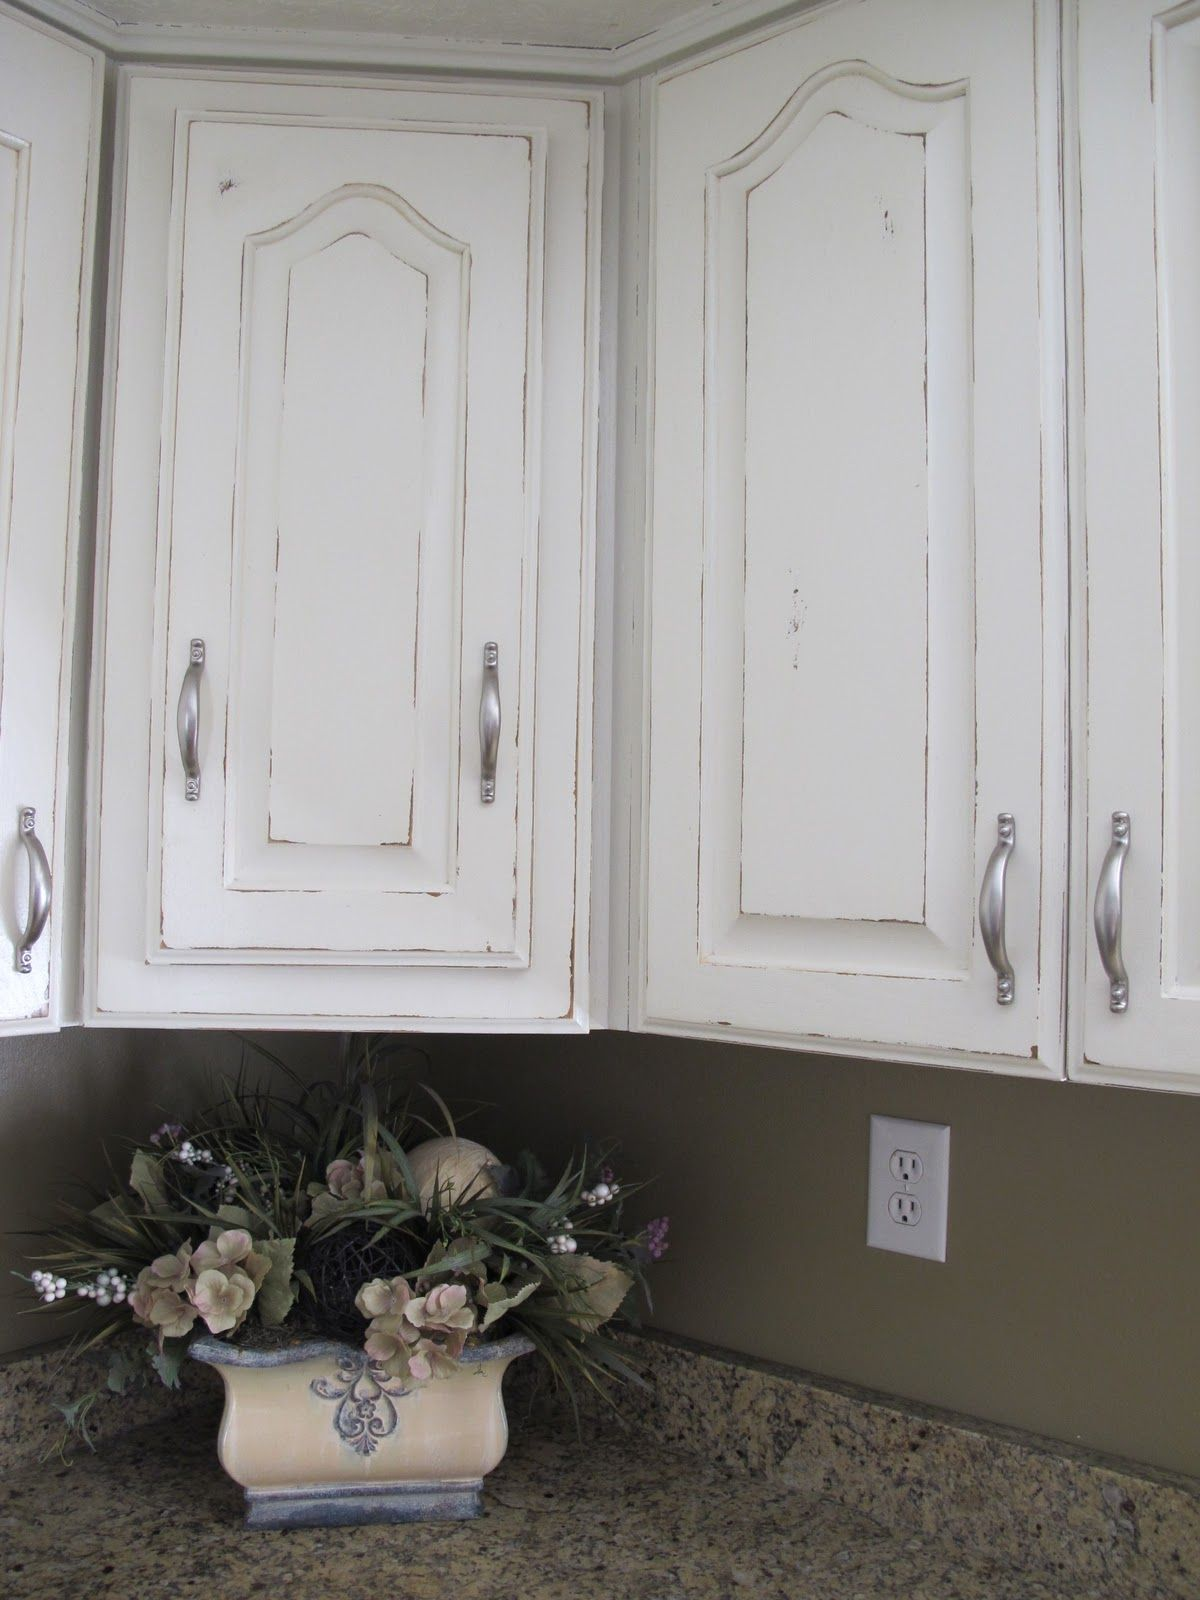 Diy Painting Kitchen Cabinets Antique White This Is What My Kitchen Cupboards Are Going To Look Like